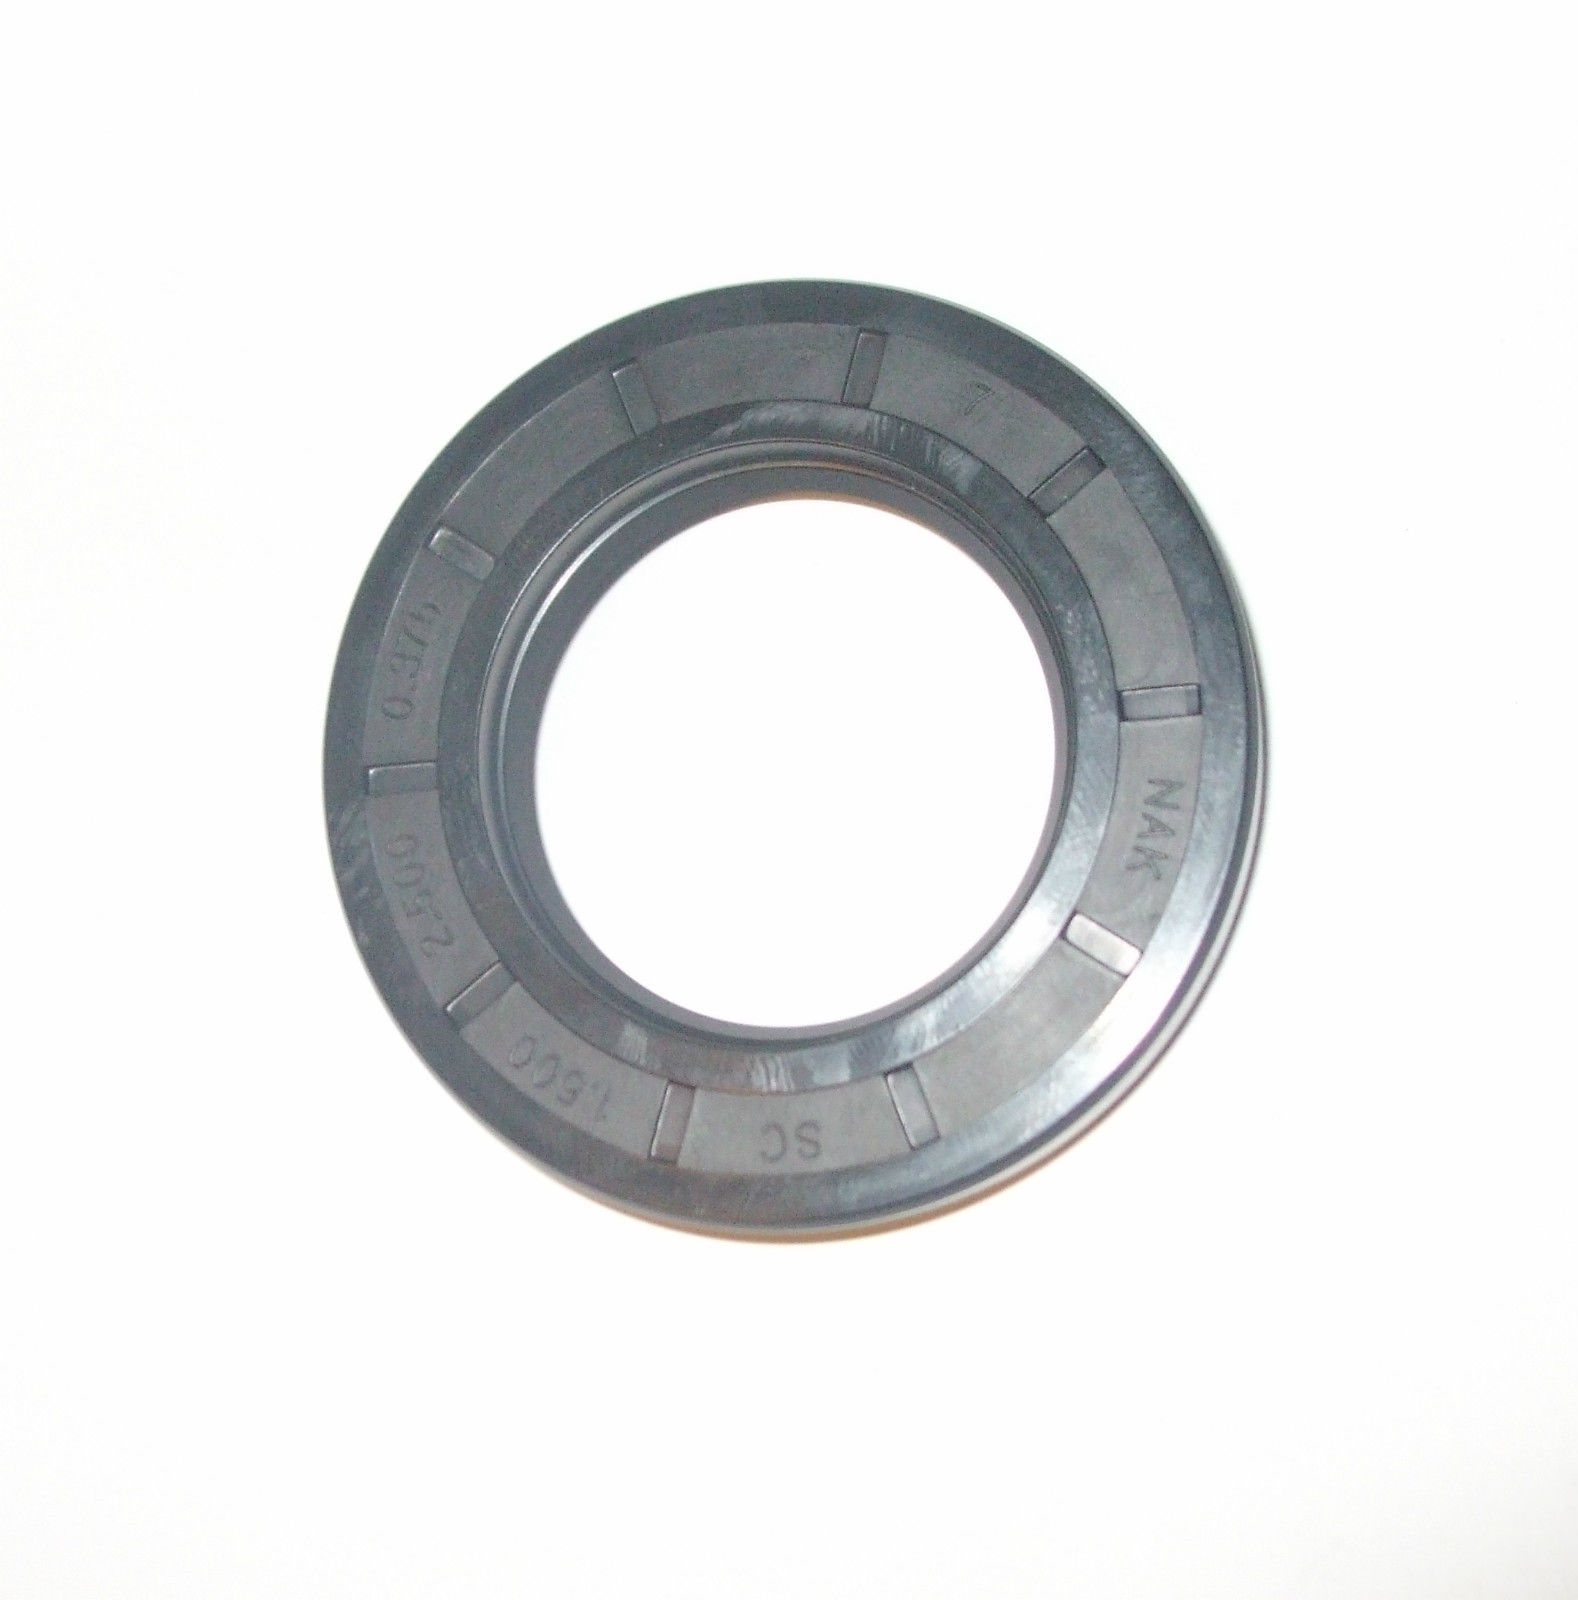 FRONT DIFFERENTIAL AXLE PINION OIL SEAL x1 (Morris Oxford MO Ser 2 3 4 5 6) (1949- 71)